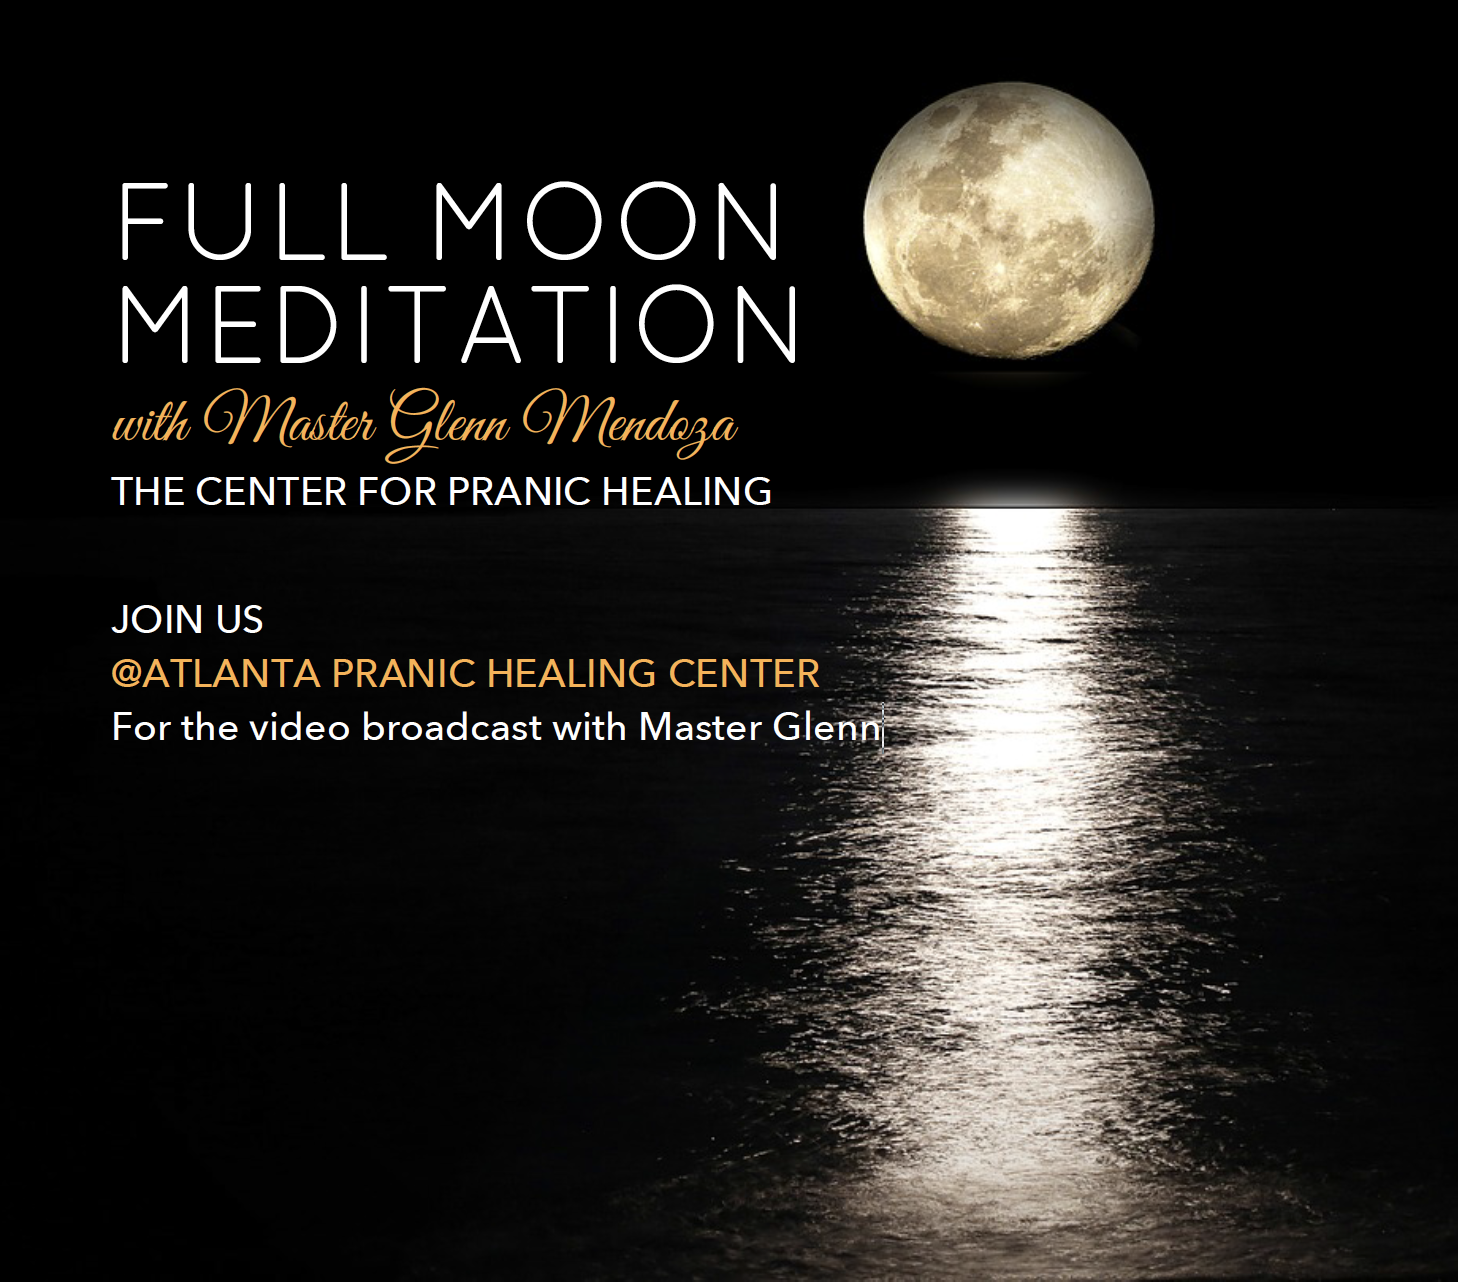 Join us for this full moon meditation at our office as we view Master Glenn's Livestream together.  Let us meditate with Master Glenn in worldwide service for humanity. One can experience the tremendous downpour of Divine energies during the Full Moon and use these special energies to bless our families, wishes, dreams, goals, projects and our lives.  Share this special event with your friends and family. Invite them to this event that promotes the will-to-do-good, promotes compassion and projects loving healing energies and peace to the troubled spots in the world.  The power of a group meditating together is exponential. The more people gathering to meditate as a group, the more divine energies can be brought down to bless Mother Earth.